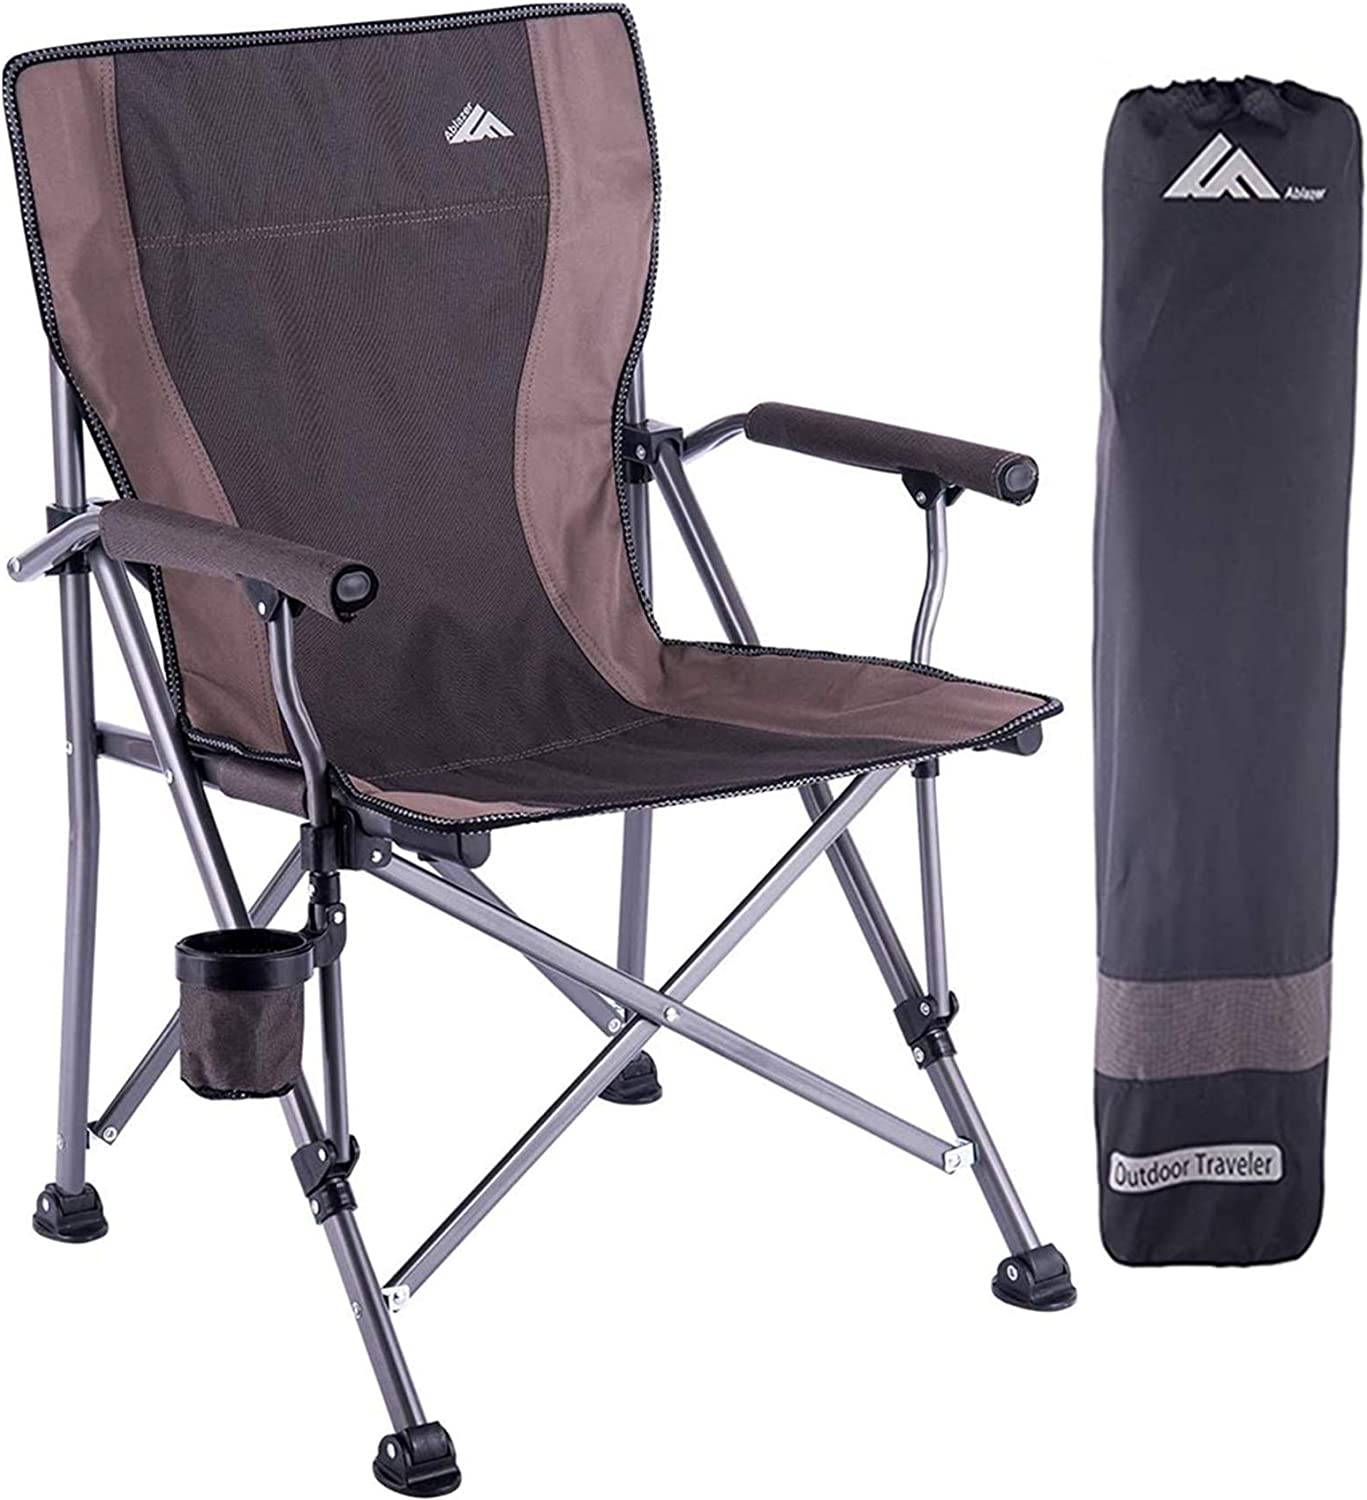 Folding Camping Chair Portable Ranking TOP13 Camp 30 for Supports Adults Discount is also underway